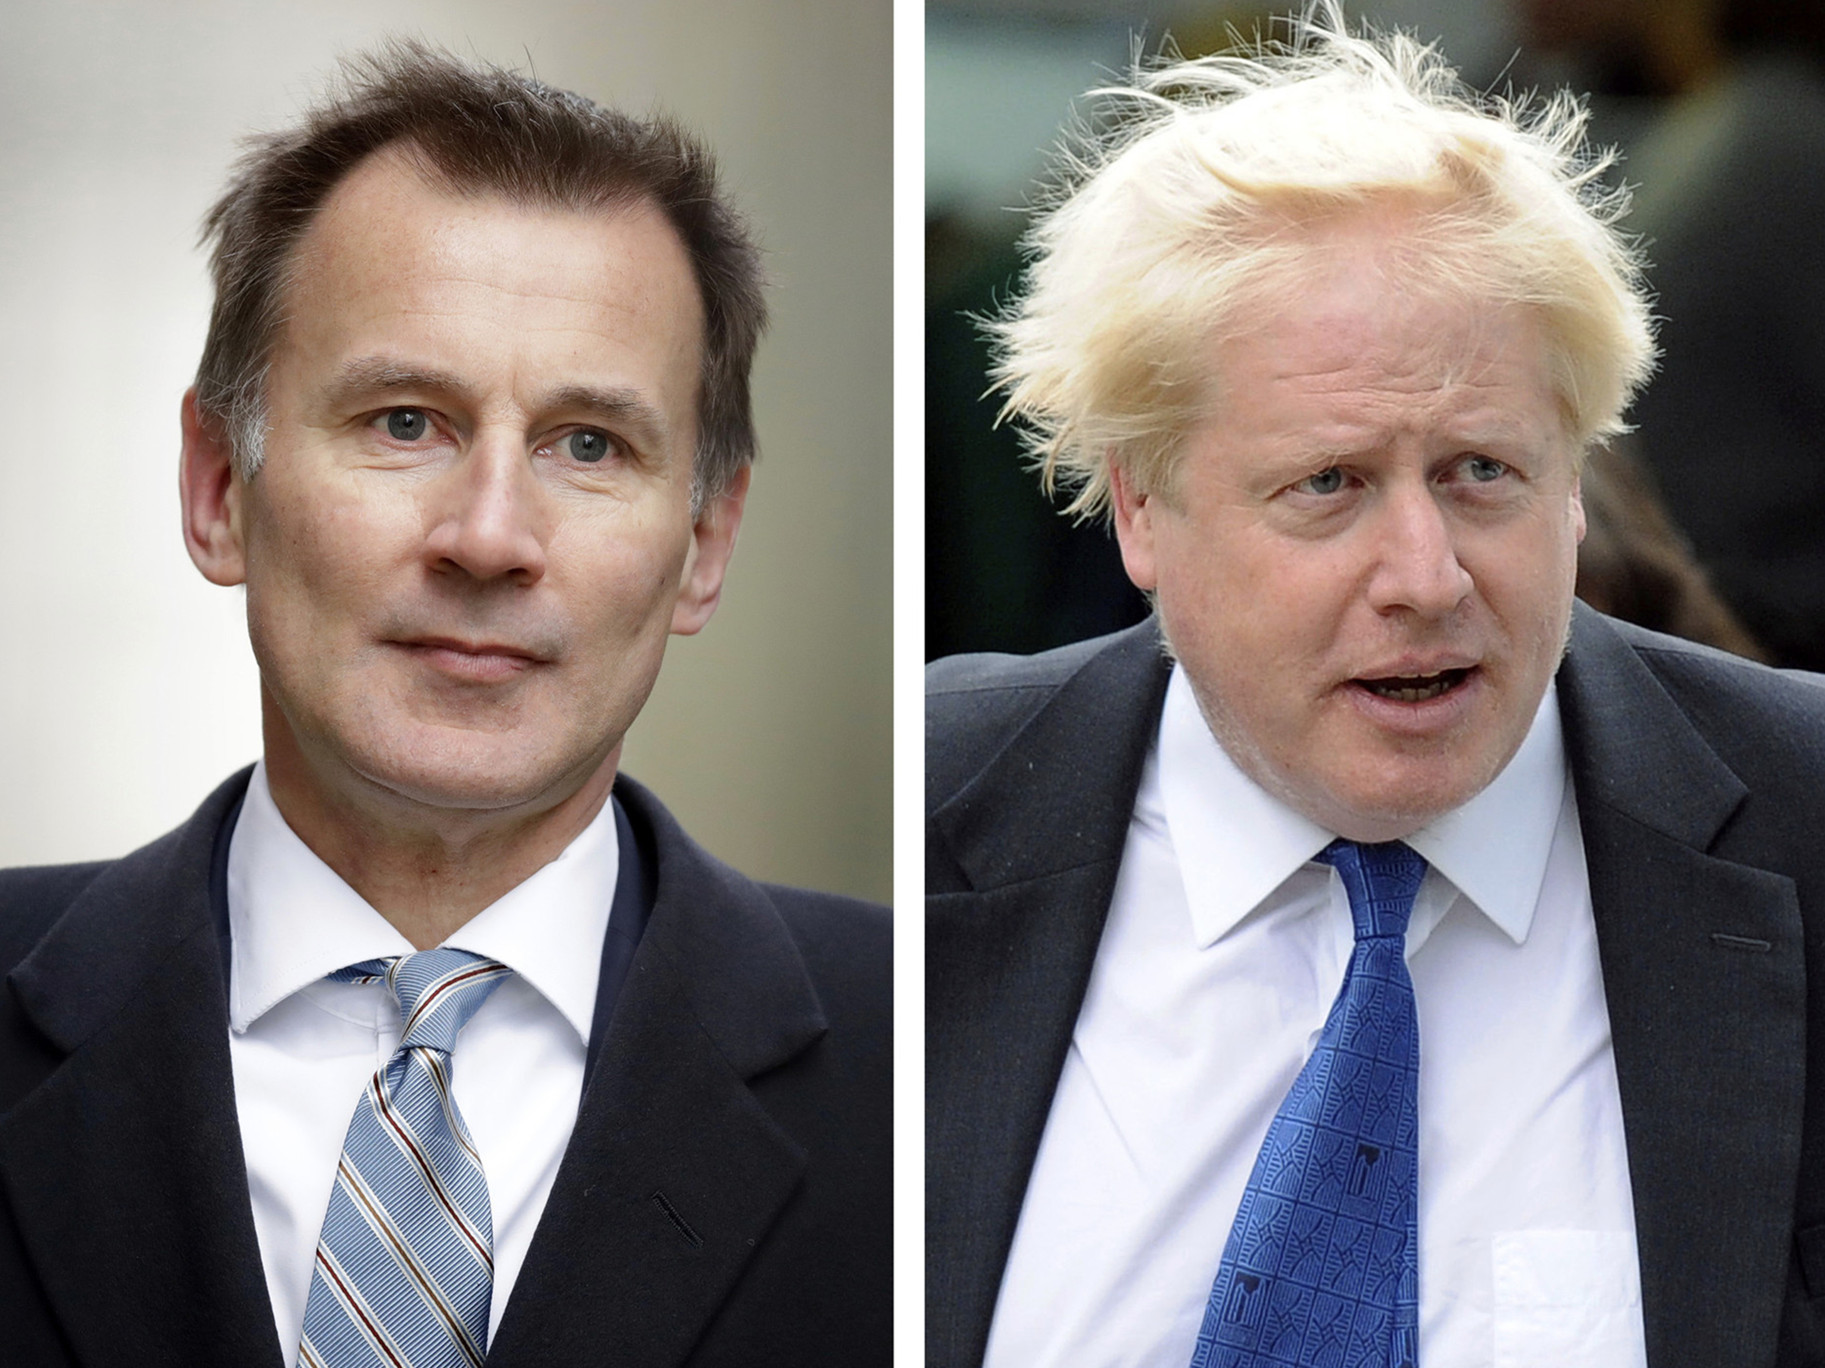 Will a new prime minister unlock the Brexit puzzle?